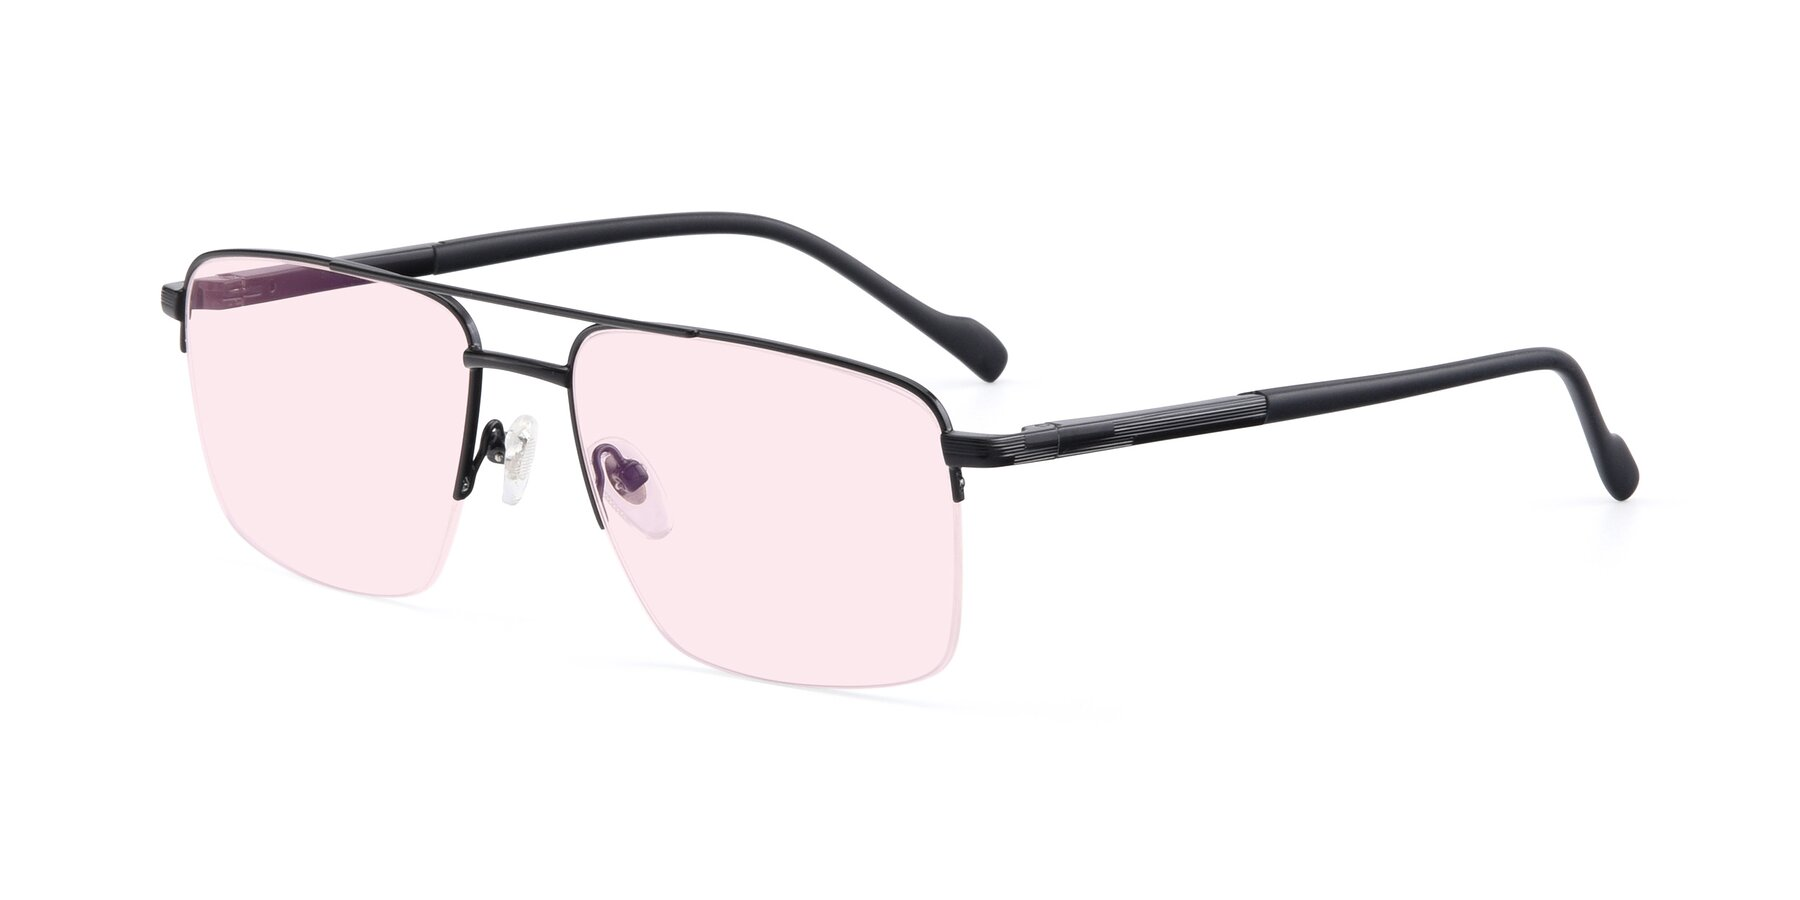 Angle of 19013 in Black with Light Pink Tinted Lenses